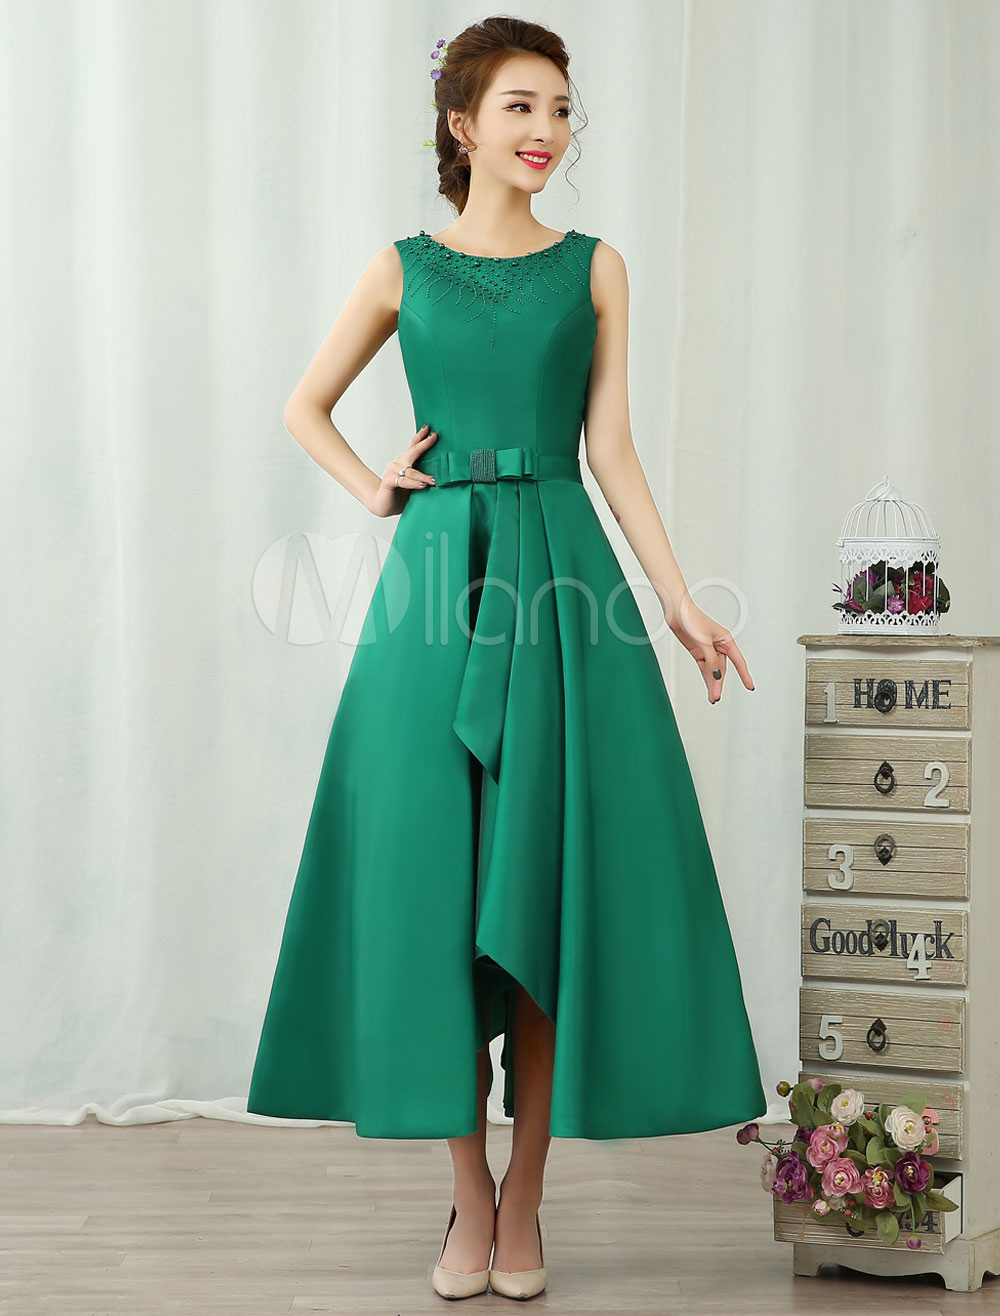 Cocktail Dresses Satin Dark Green Sleeveless Bow Sash Ruffles Backless A Line Formal Party Dresses (Wedding Cheap Party Dress) photo